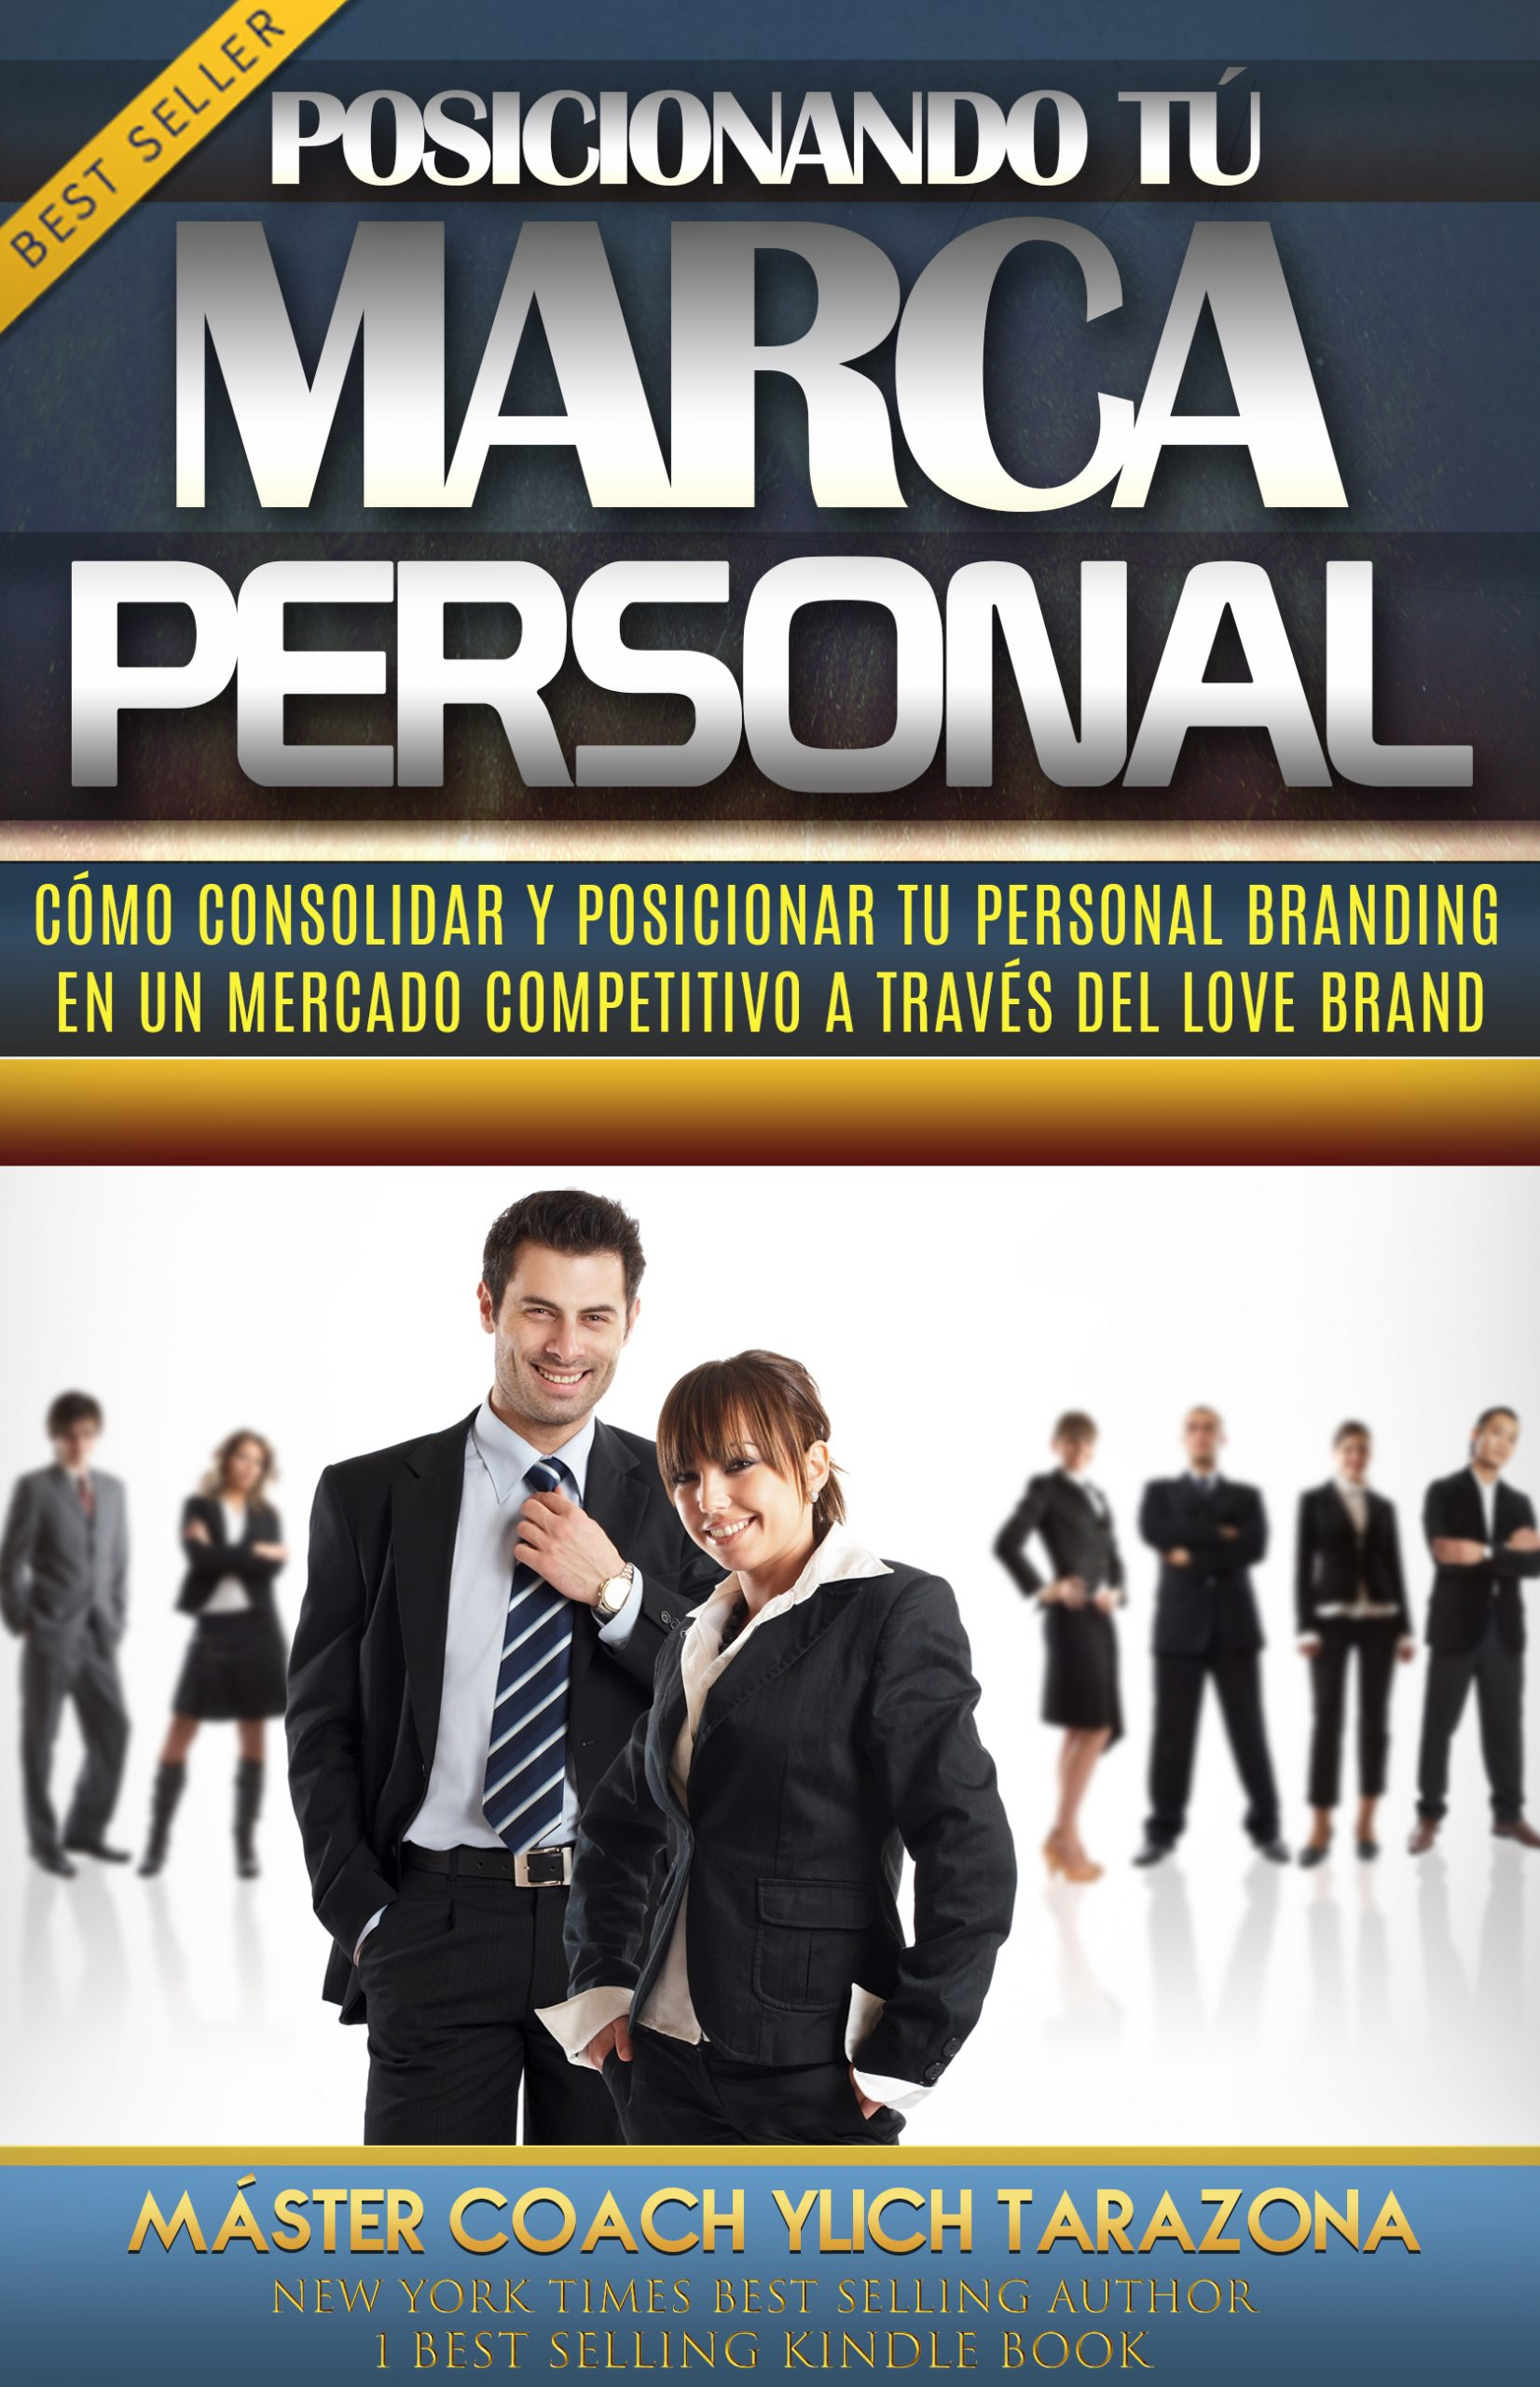 Positioning your Personal Brand